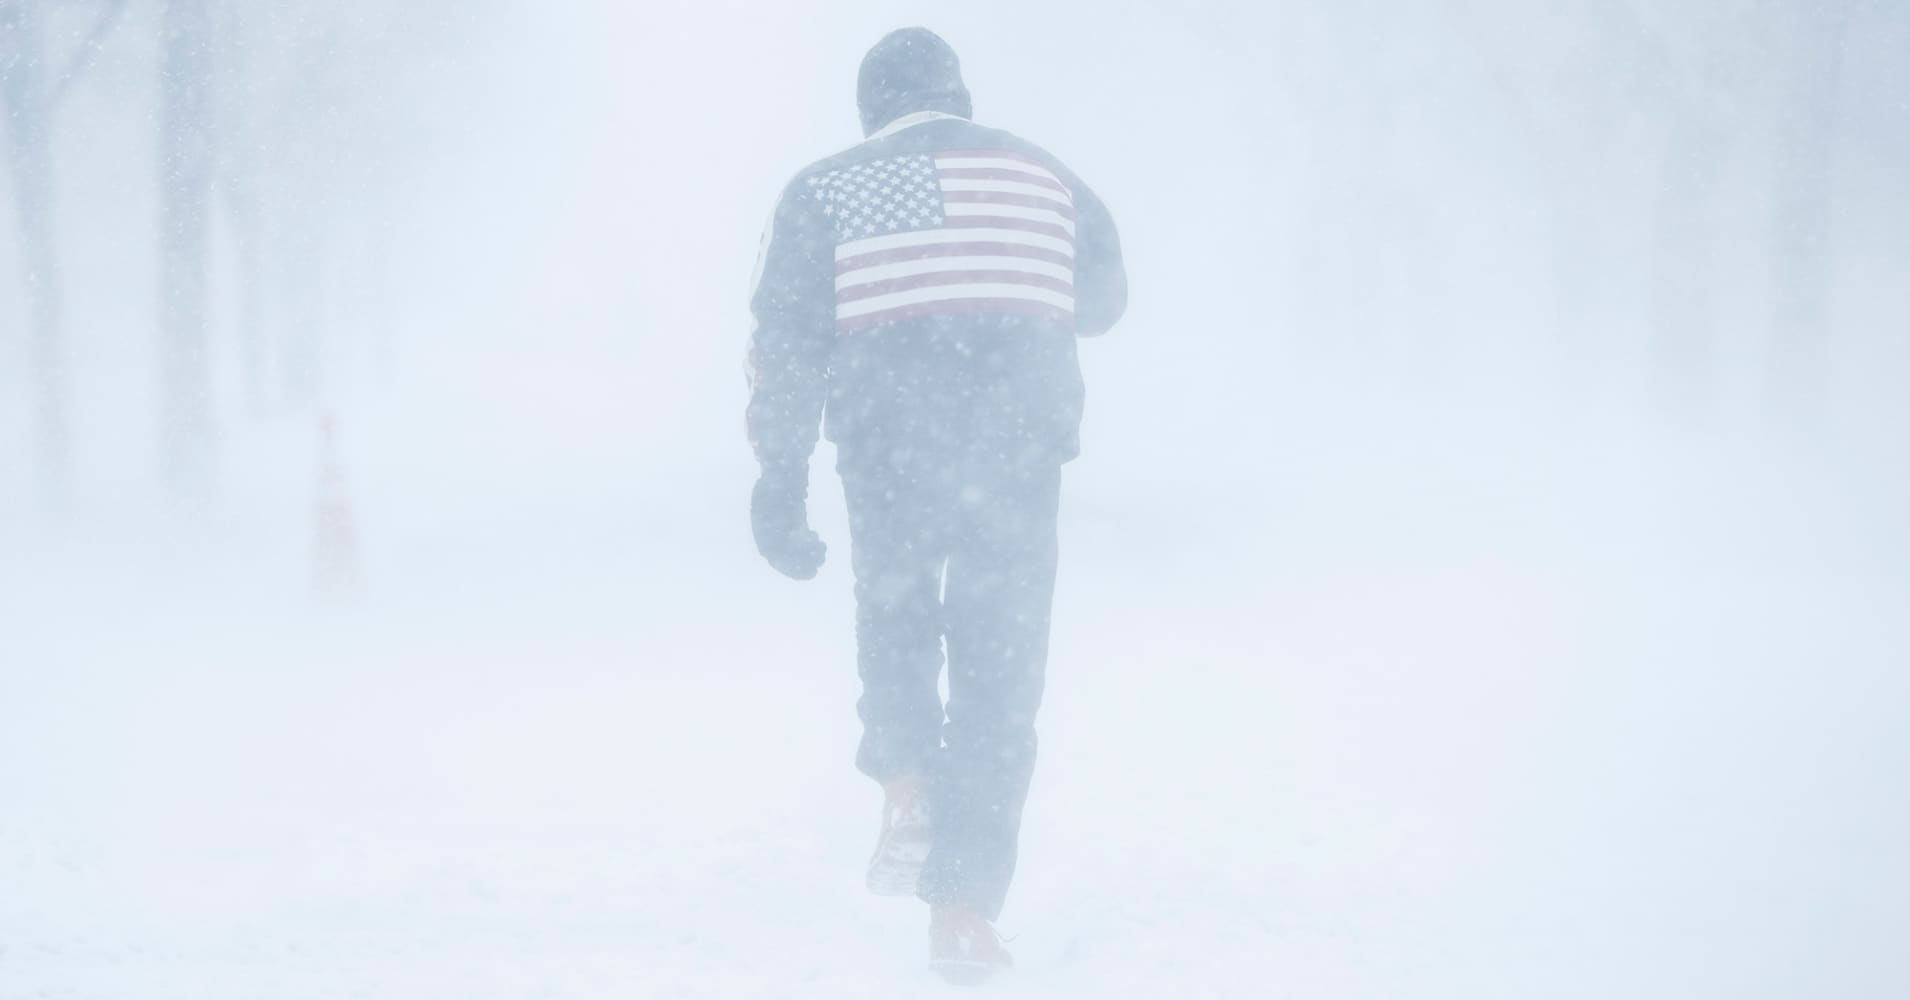 More than a dozen dead as powerful blizzard batters United States  east coast